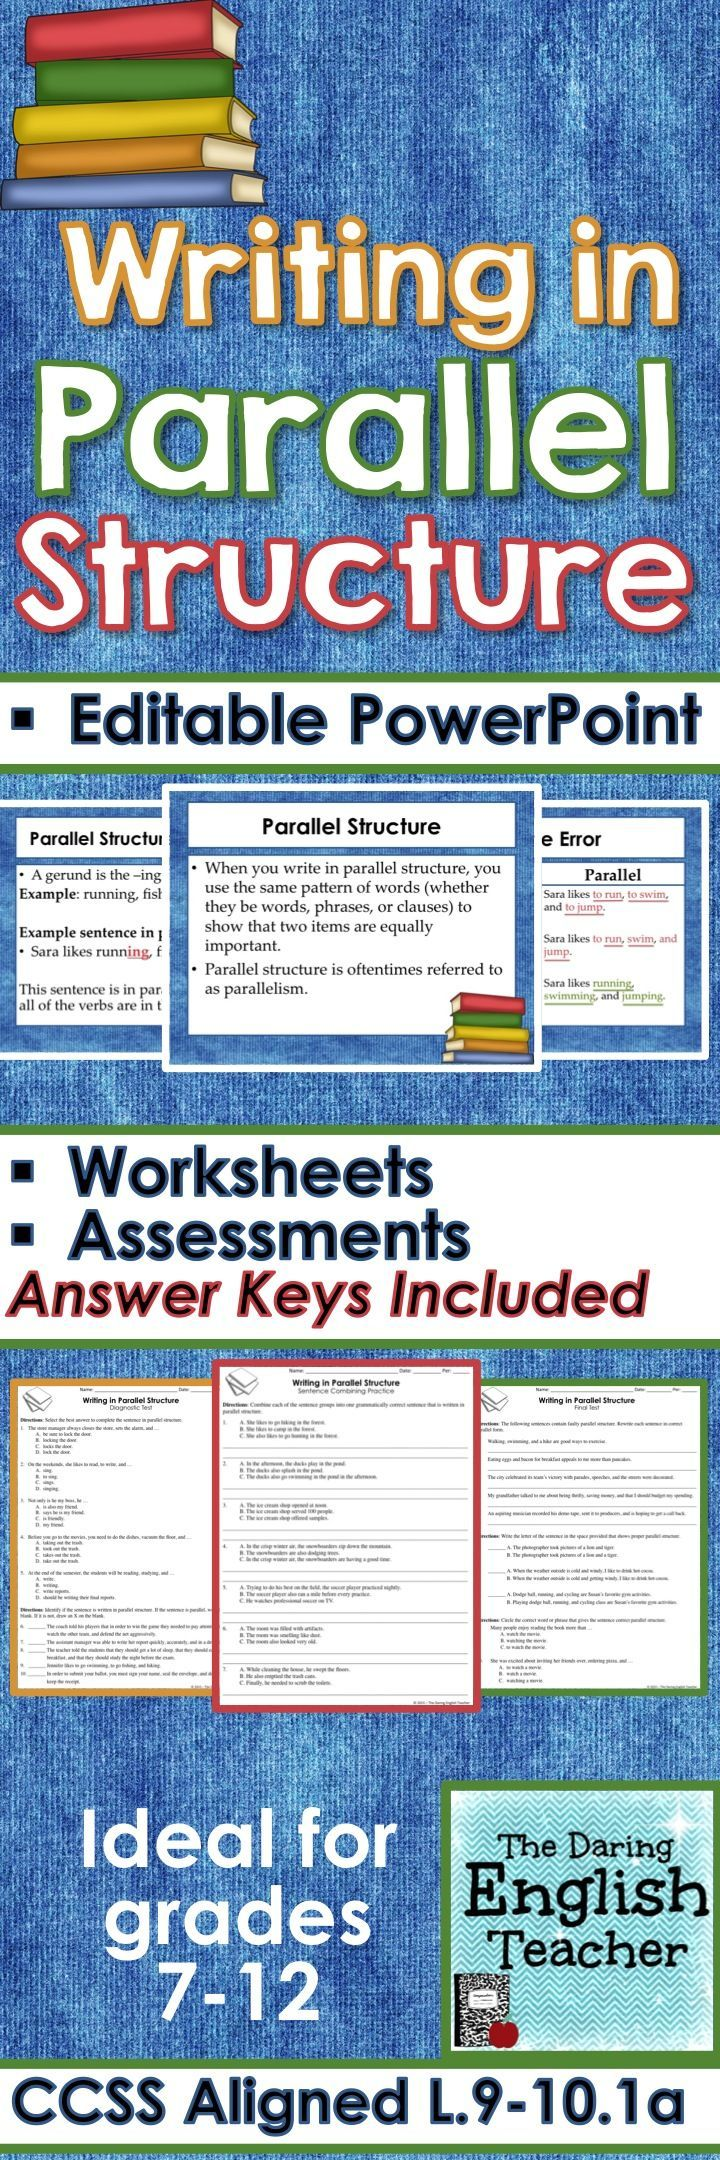 Workbooks » Parallel Sentence Structure Worksheets - Free Printable ...